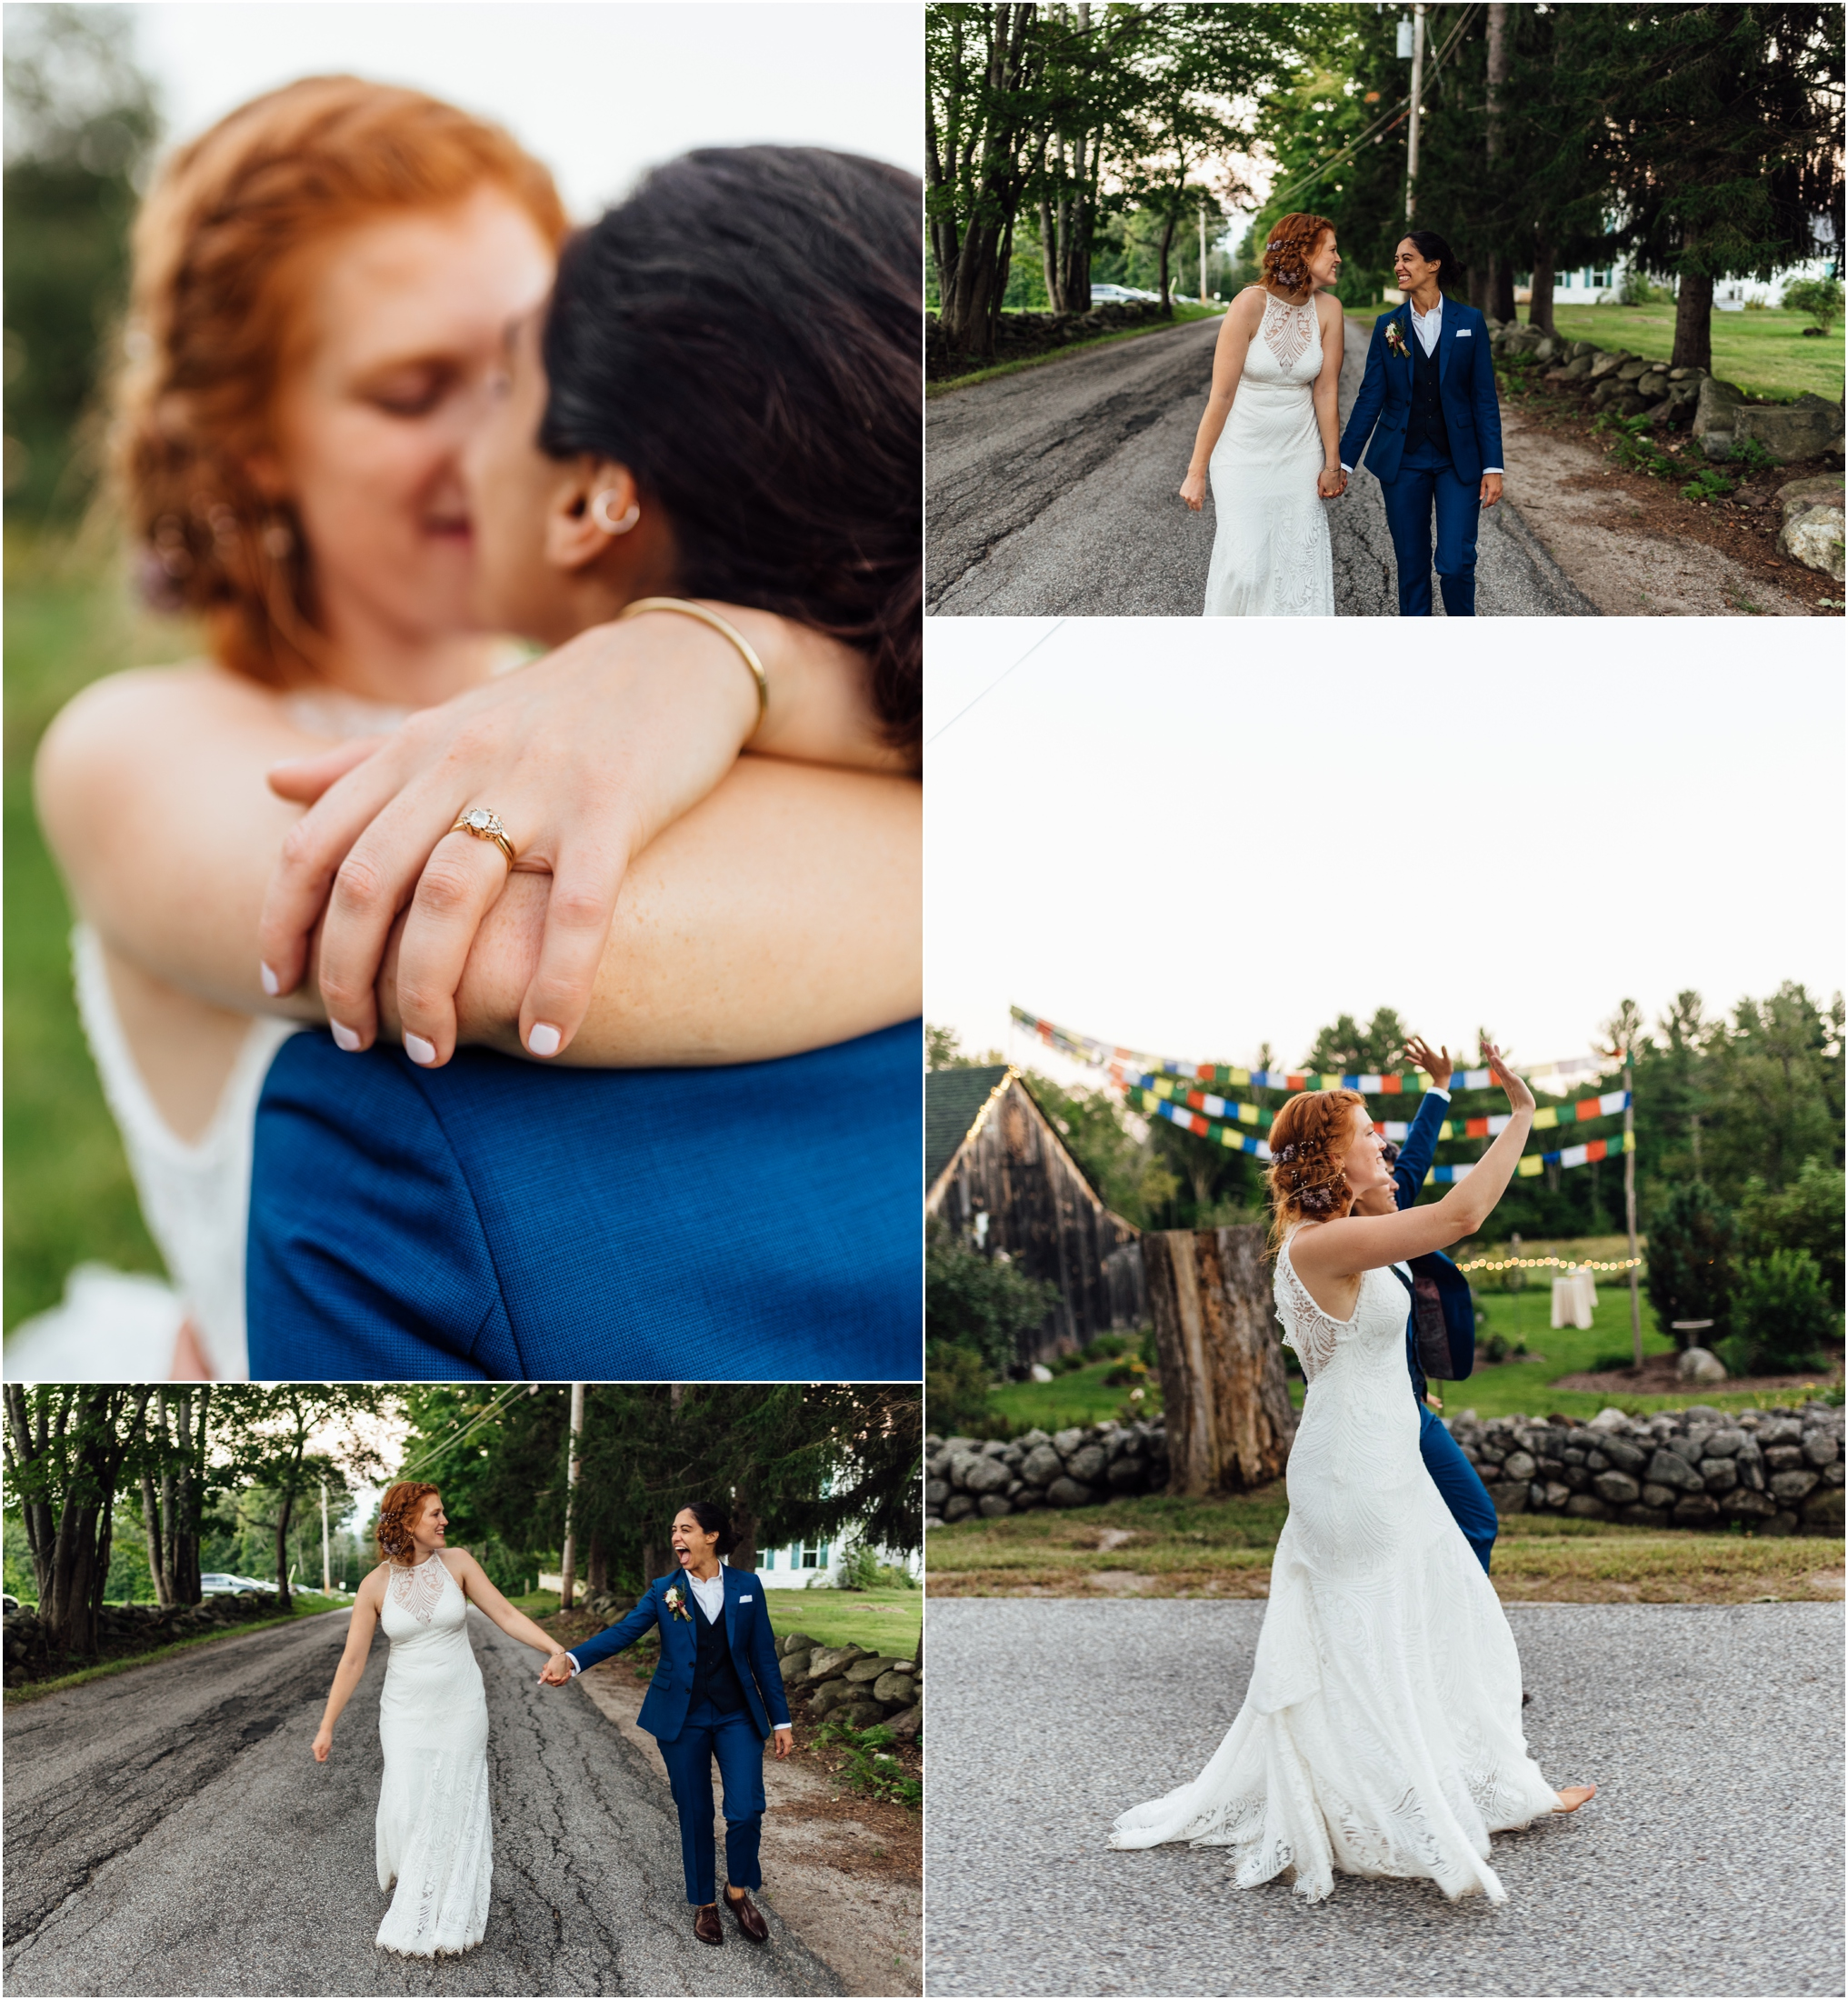 Kate_and_Michele_New_Hampshire_wedding_the_photo_farm_0634.jpg